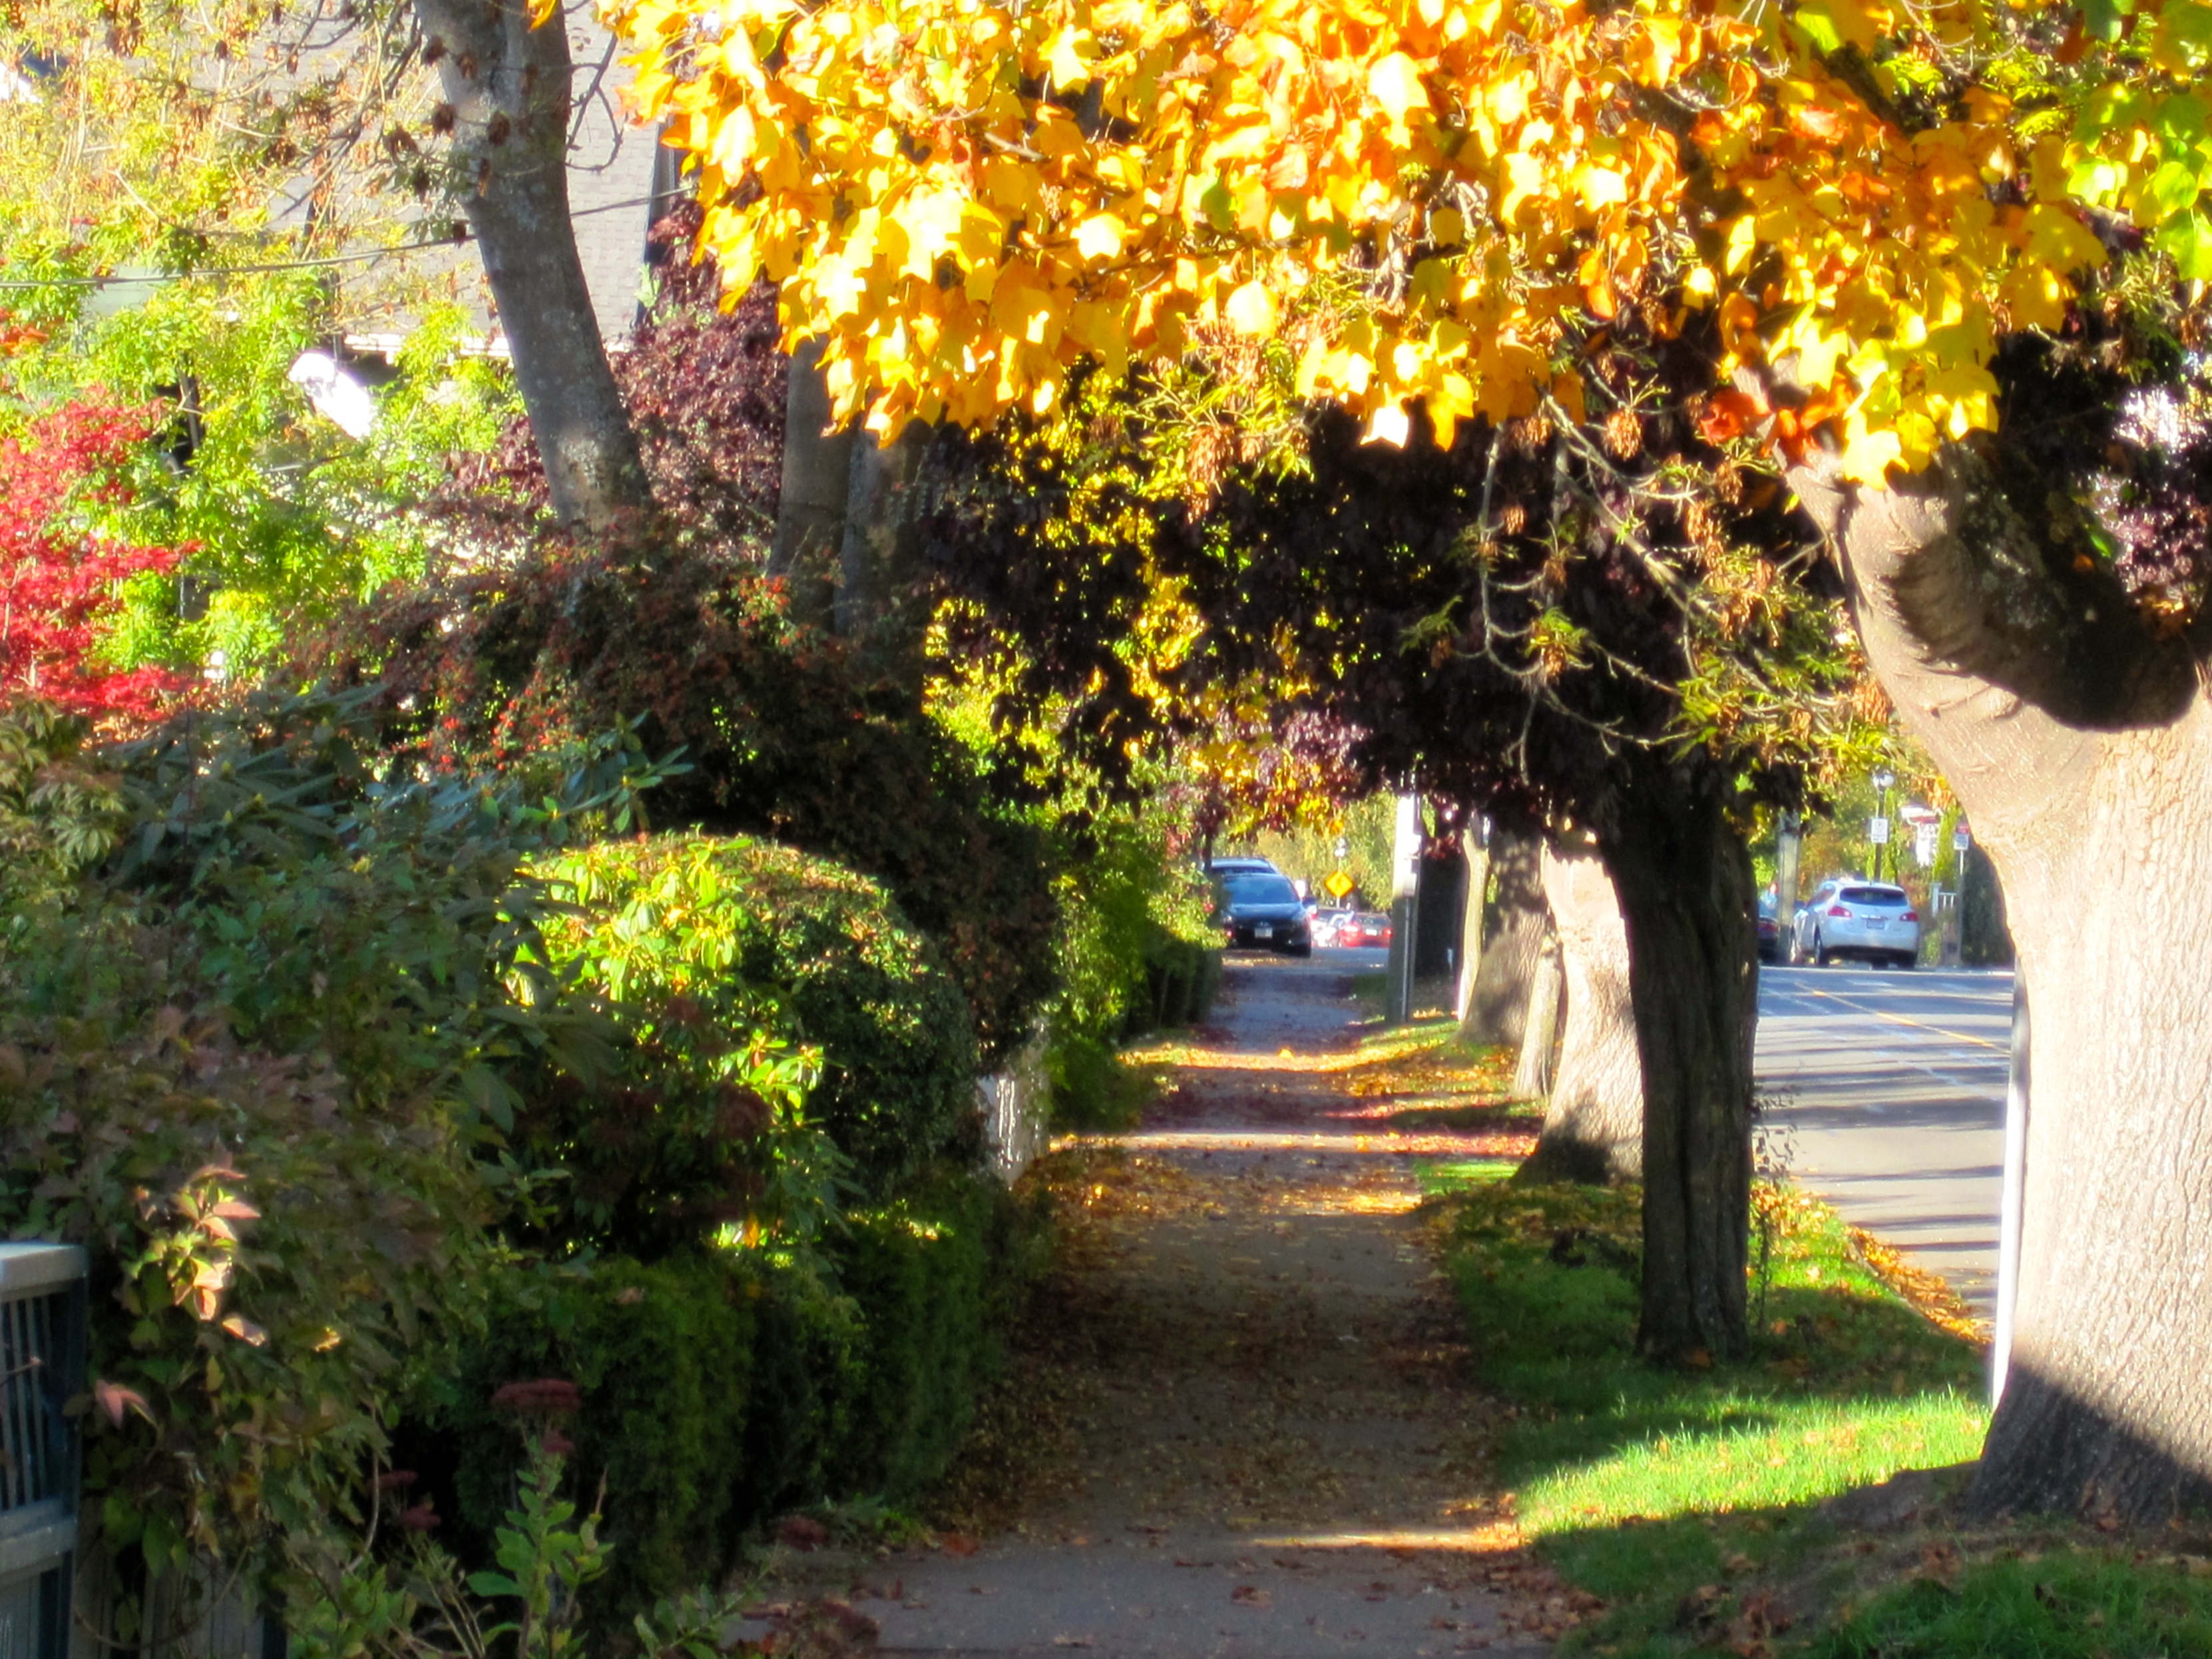 Picture of tree lined street in Oak Bay Village, Victoria, BC